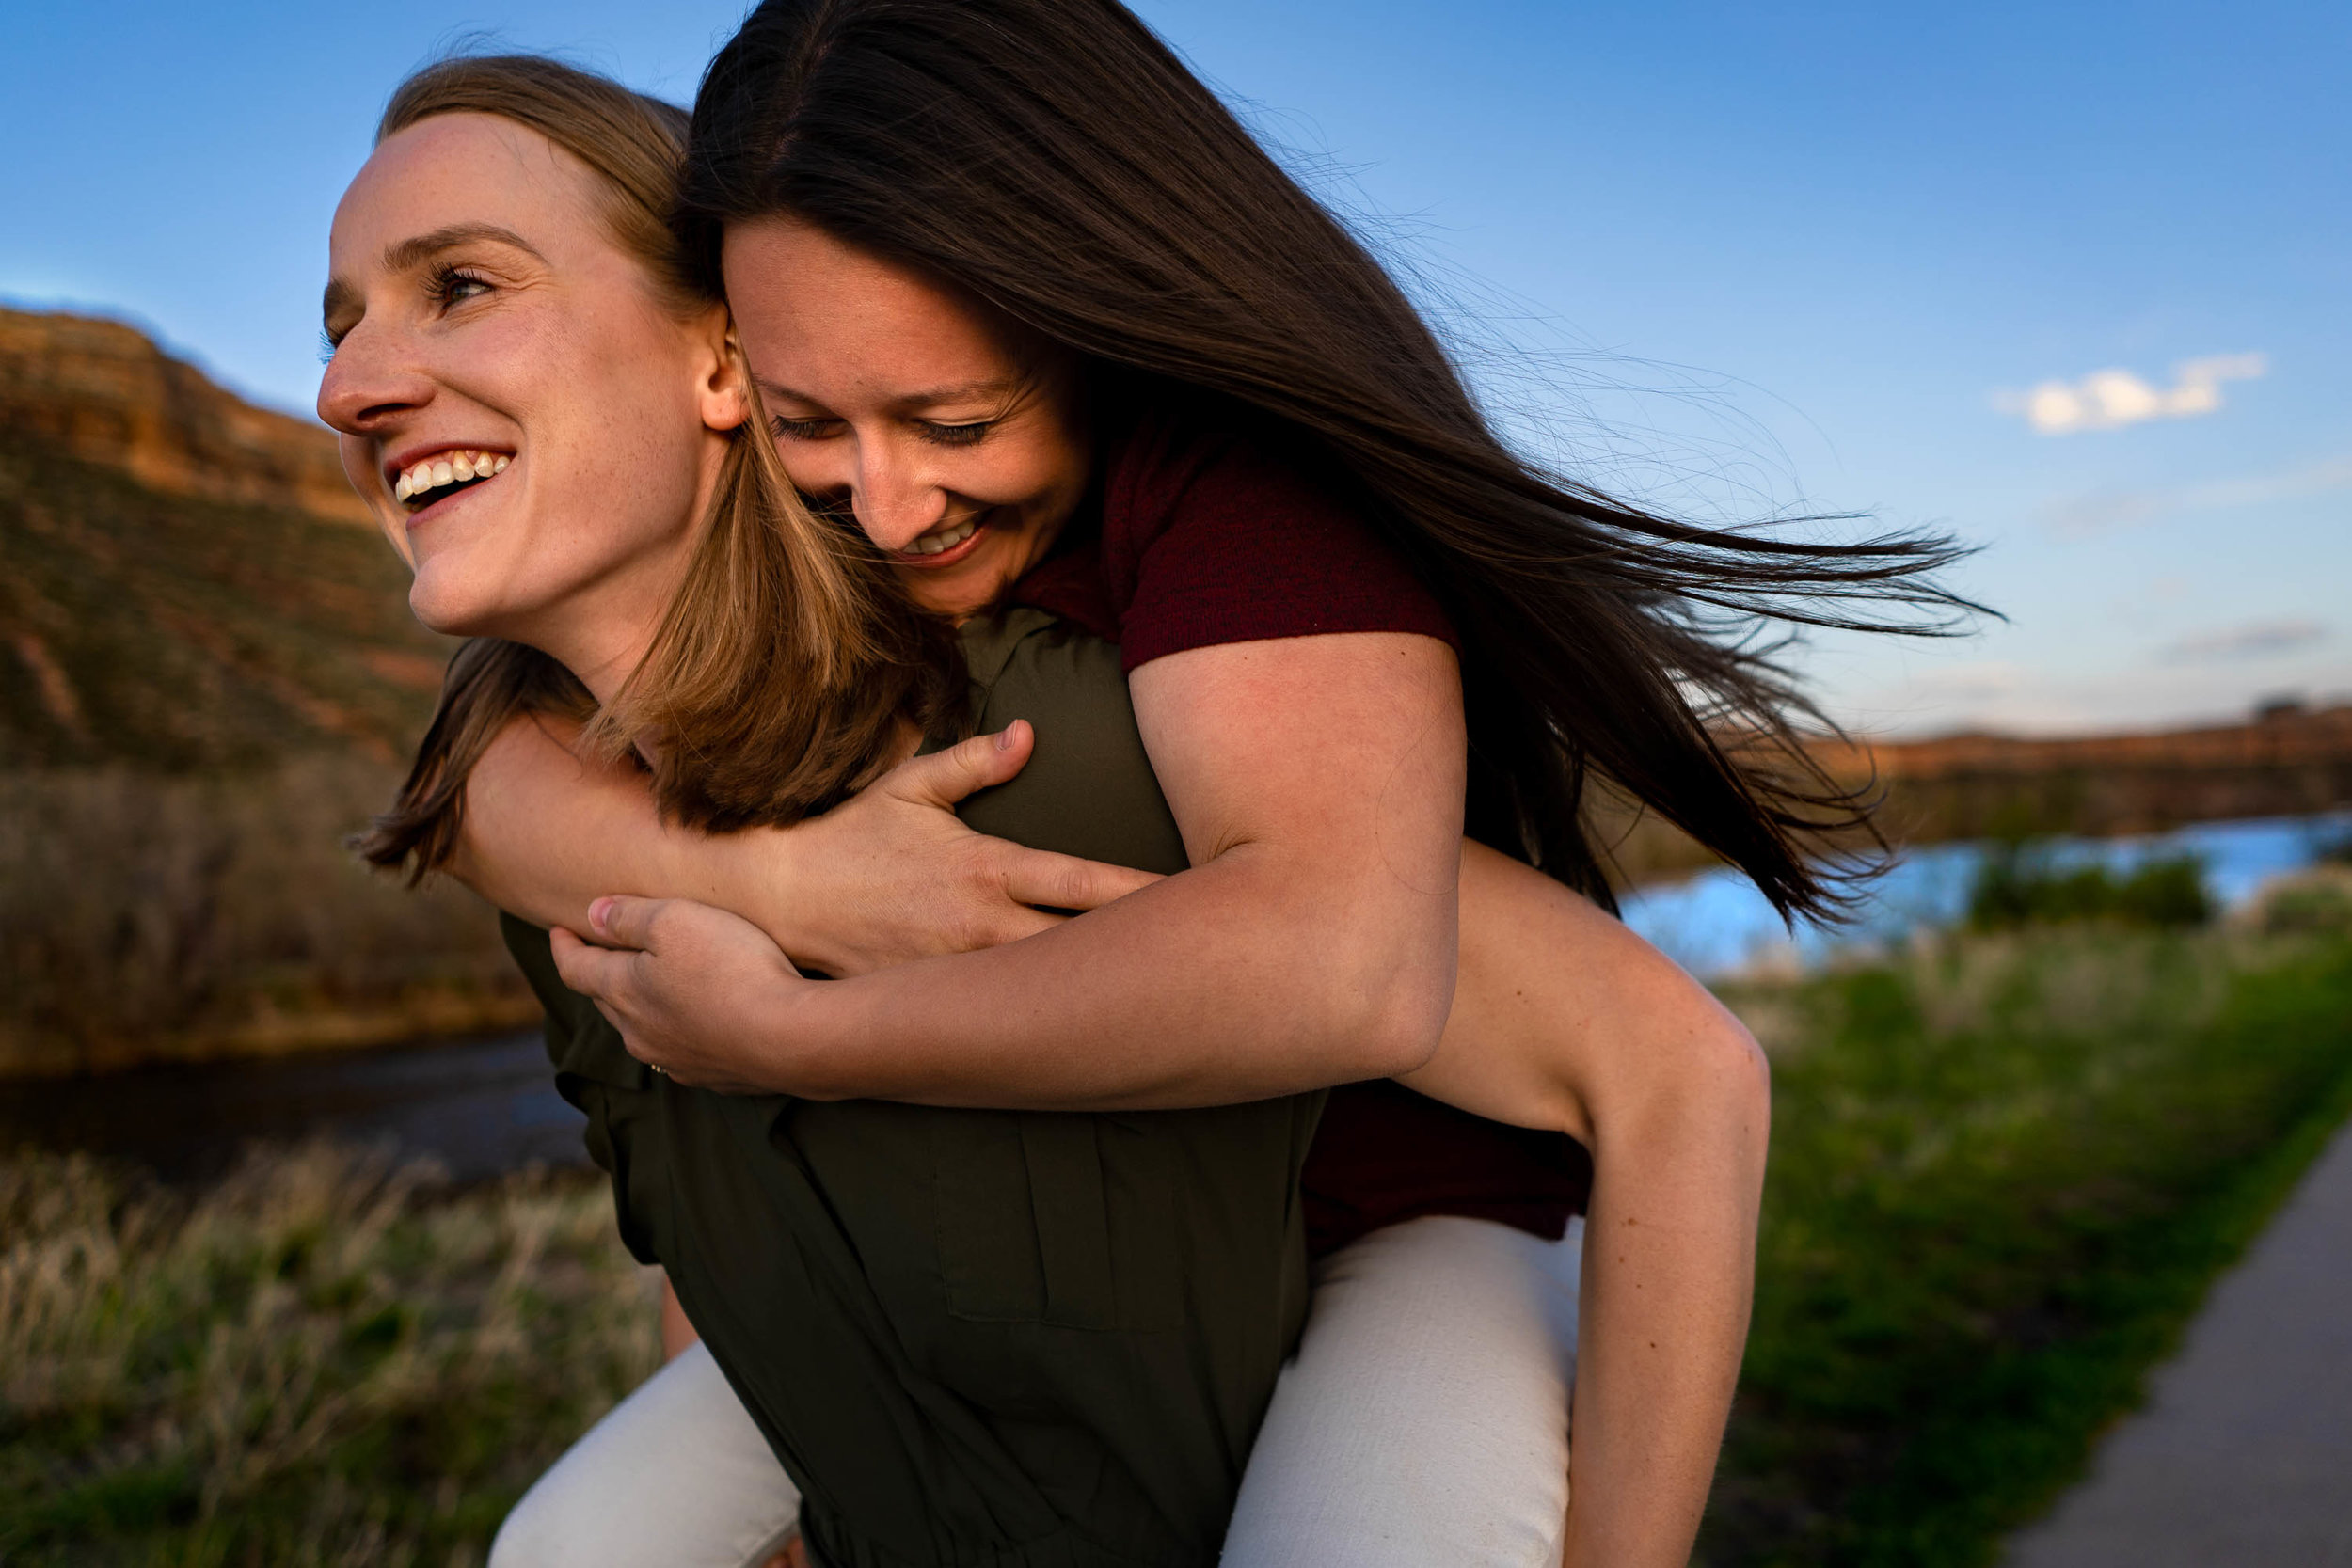 Poudre_Canyon_Engagement_Session-38.jpg